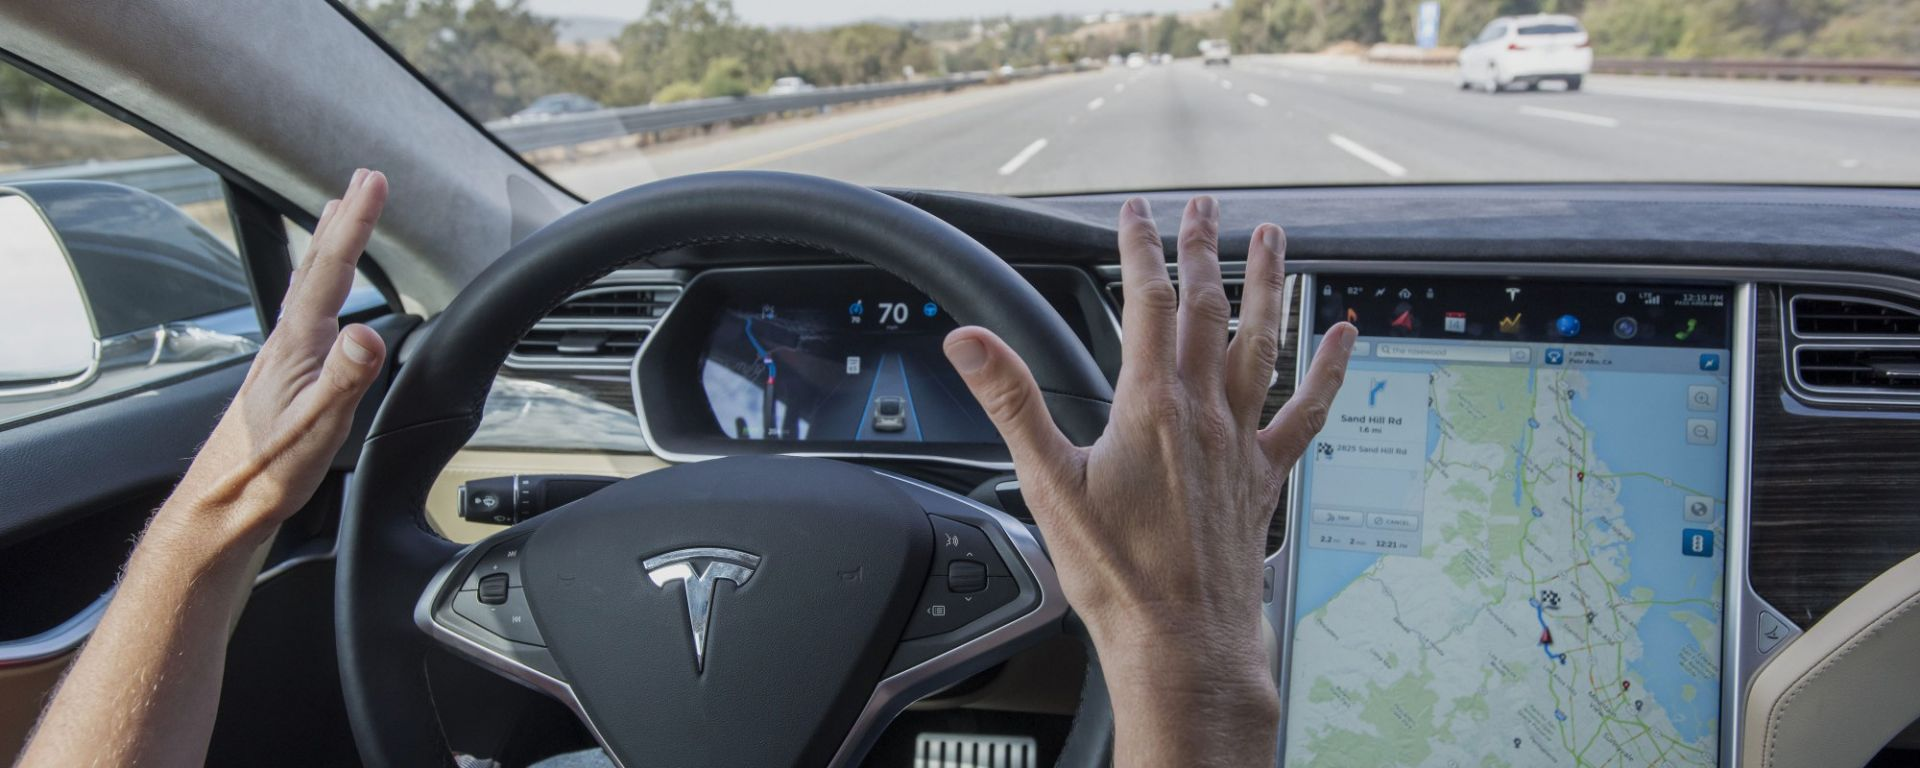 La guida autonoma di Tesla causa incidente mortale